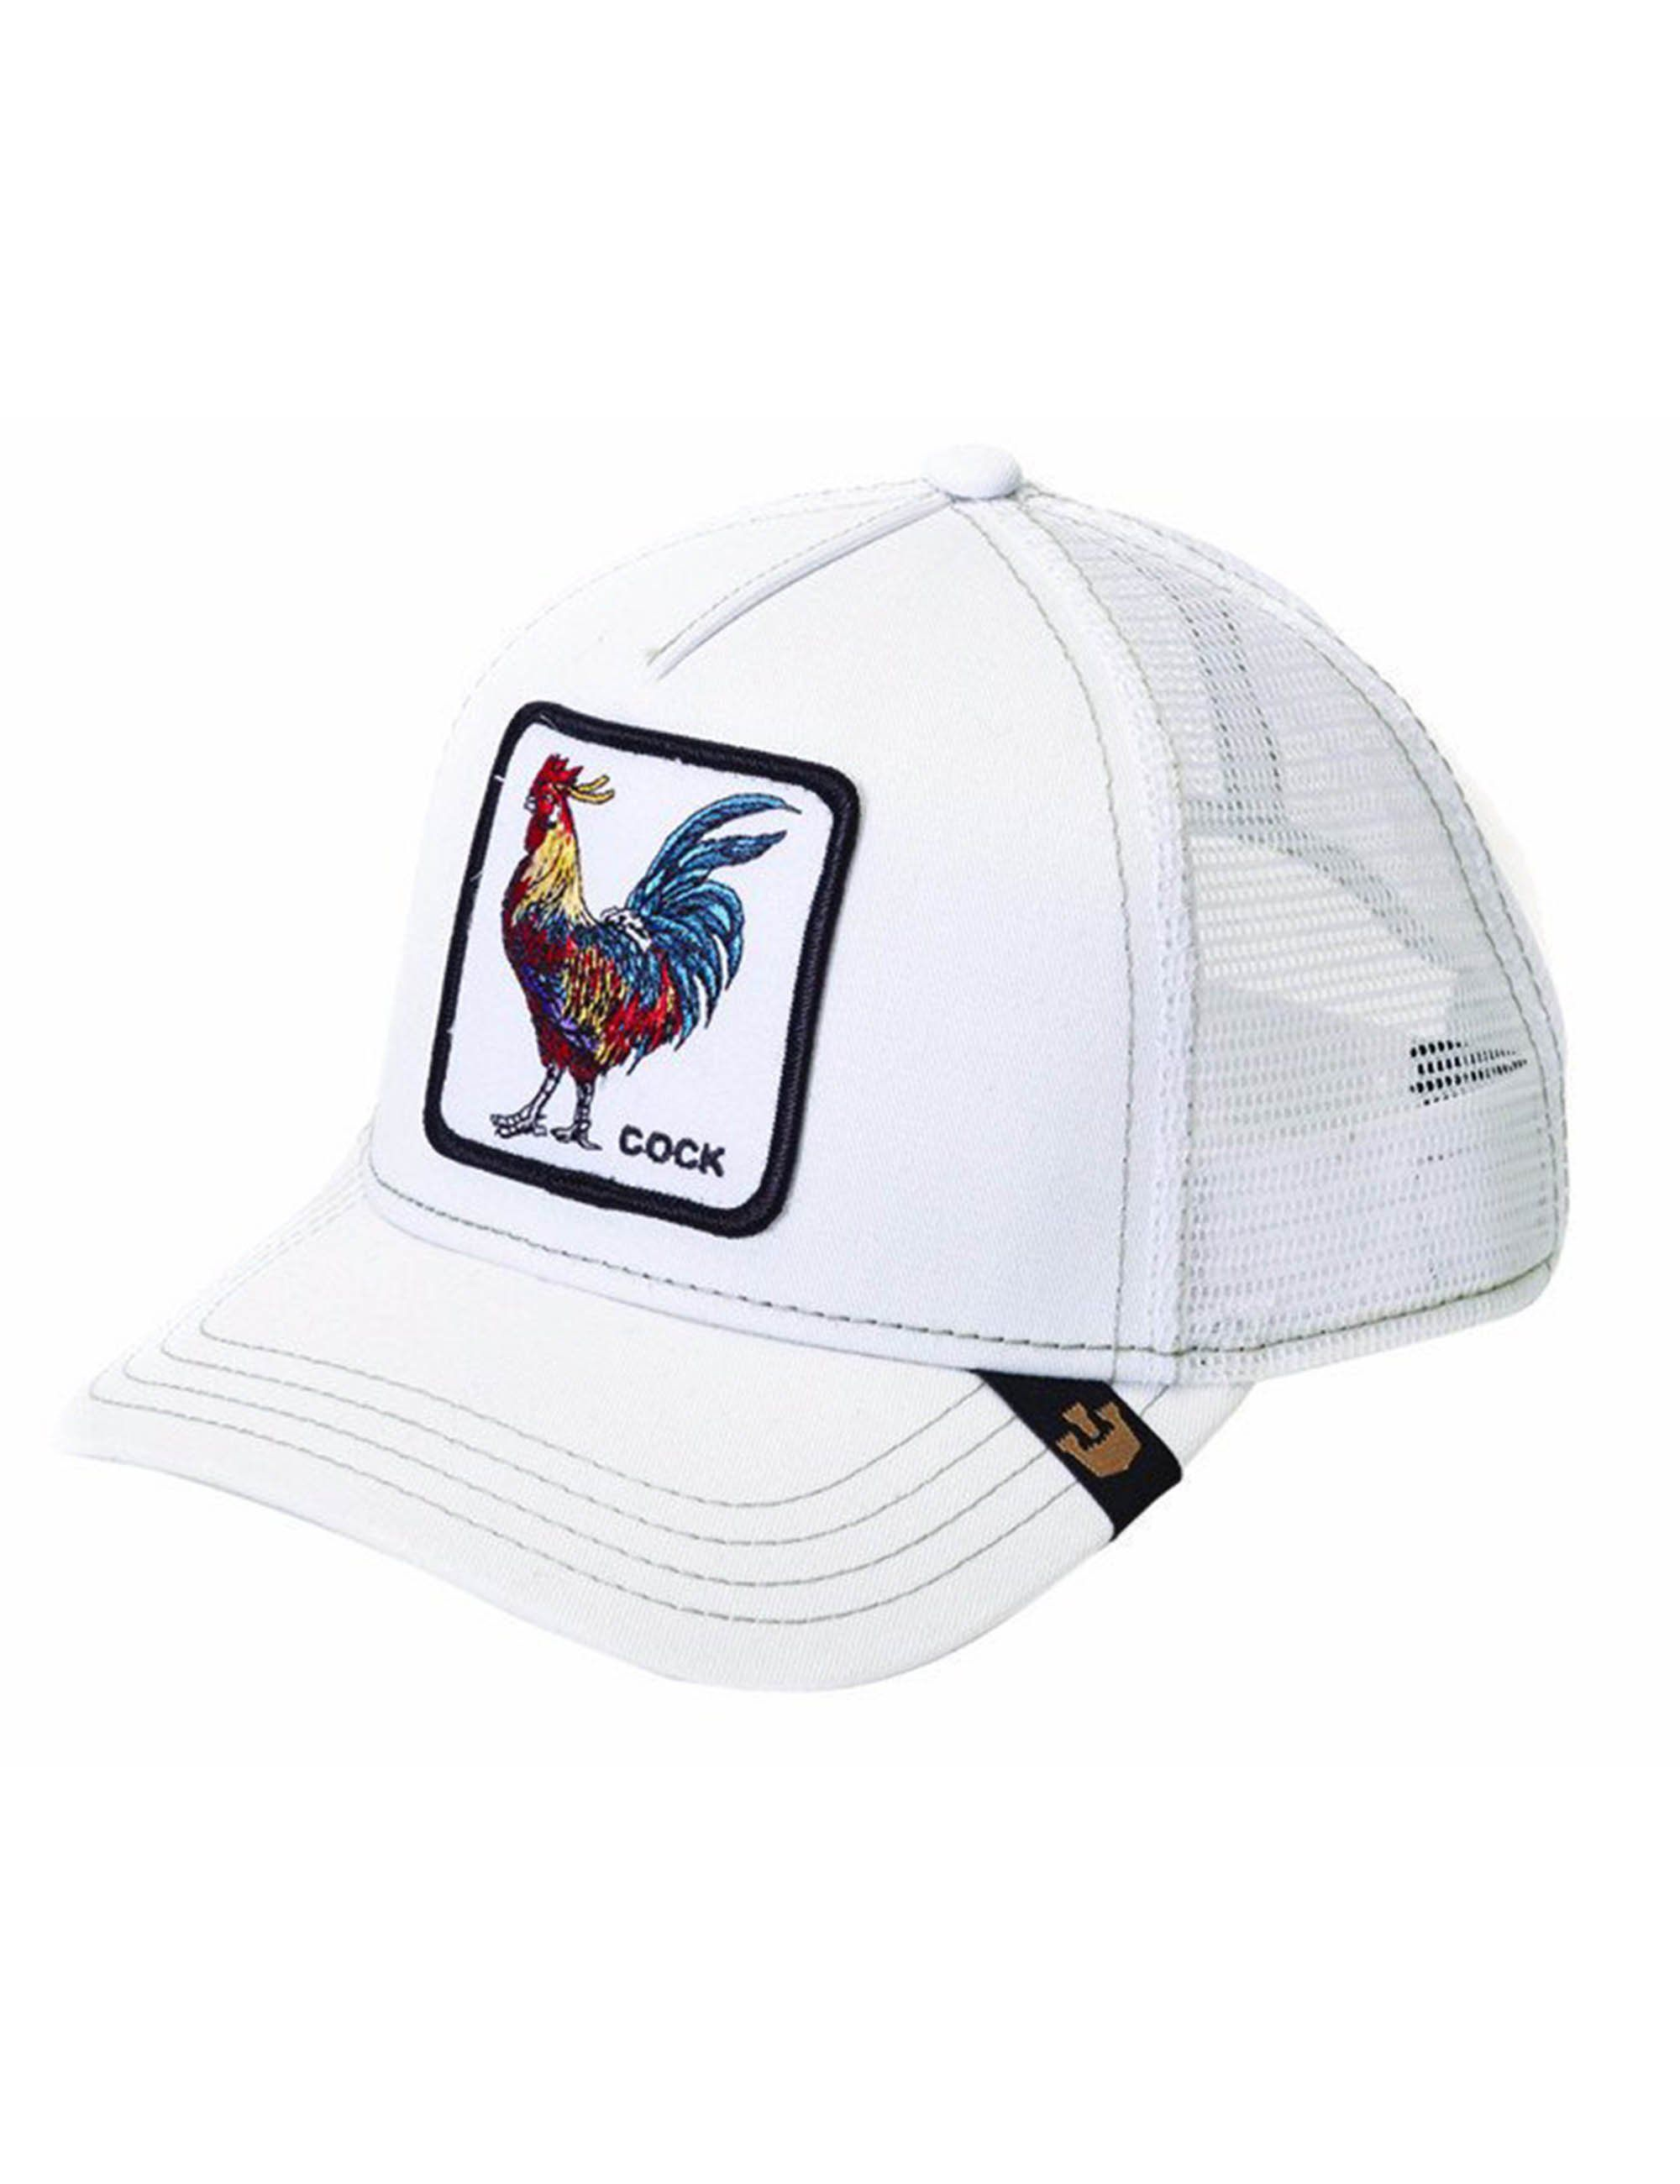 2119a426 Goorin Bros Animal Farm Trucker Cap Gallo | Cap | Hats, Snapback ...